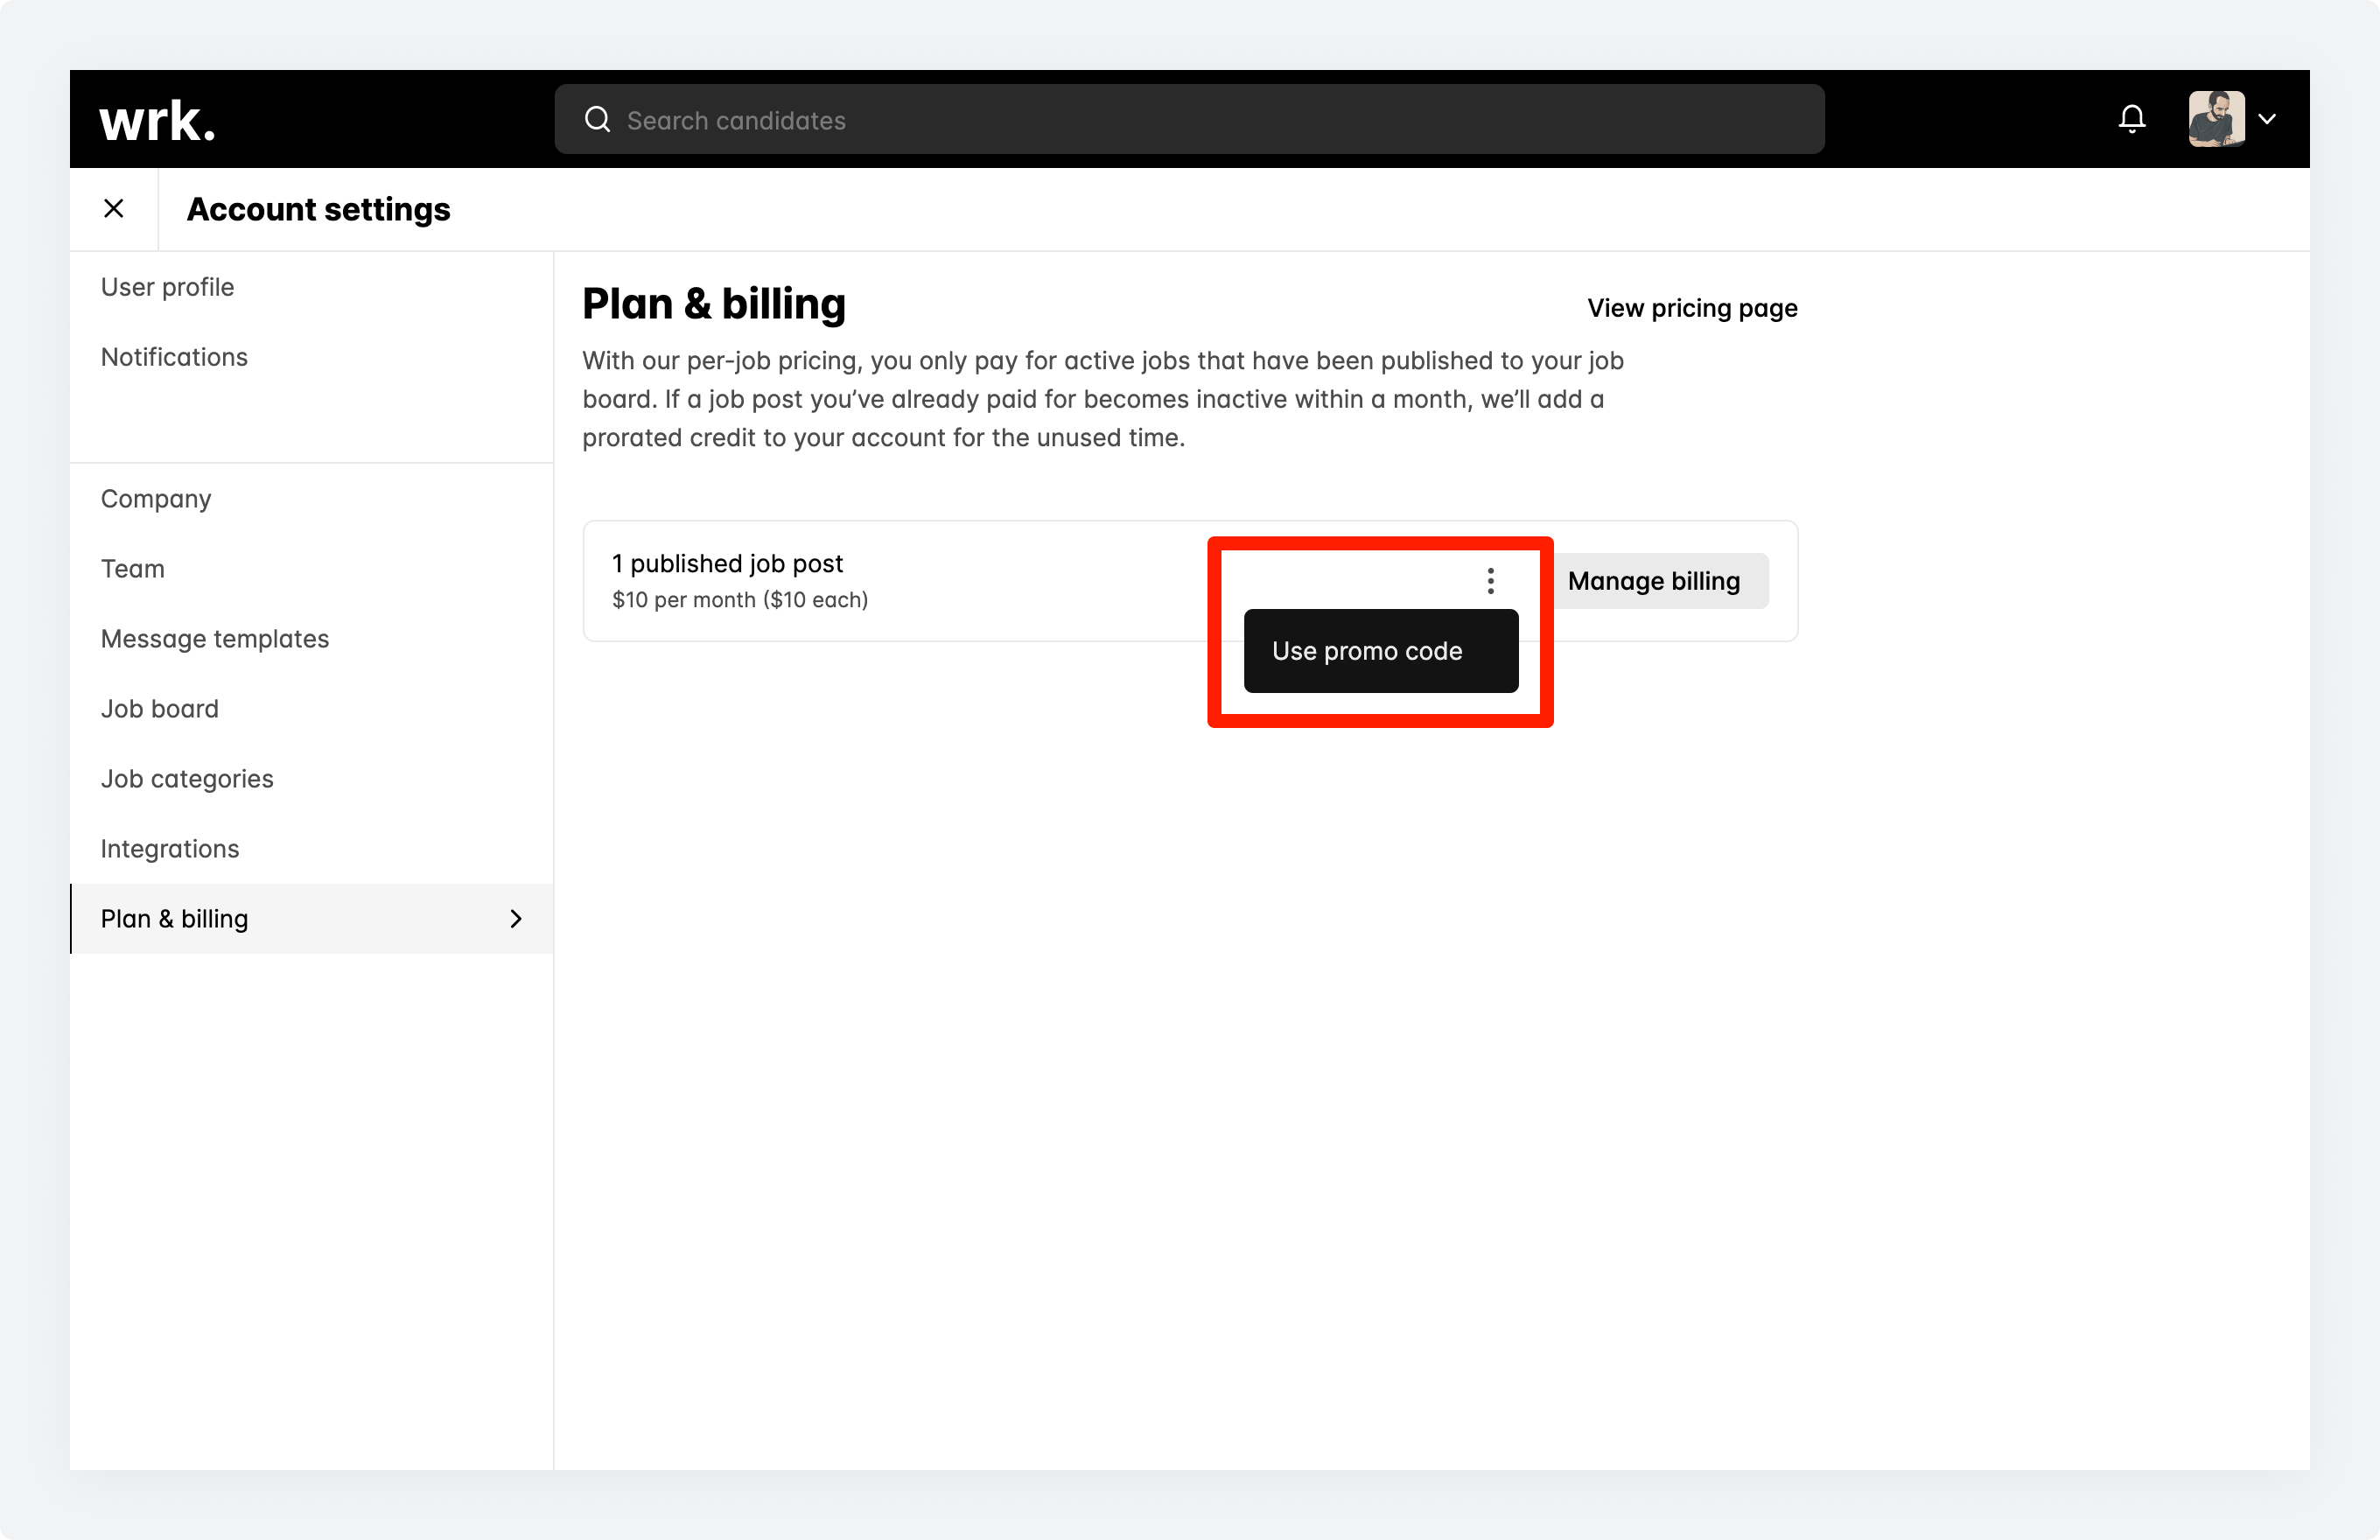 The use promo code option available on the plan & billing screen in Wrk